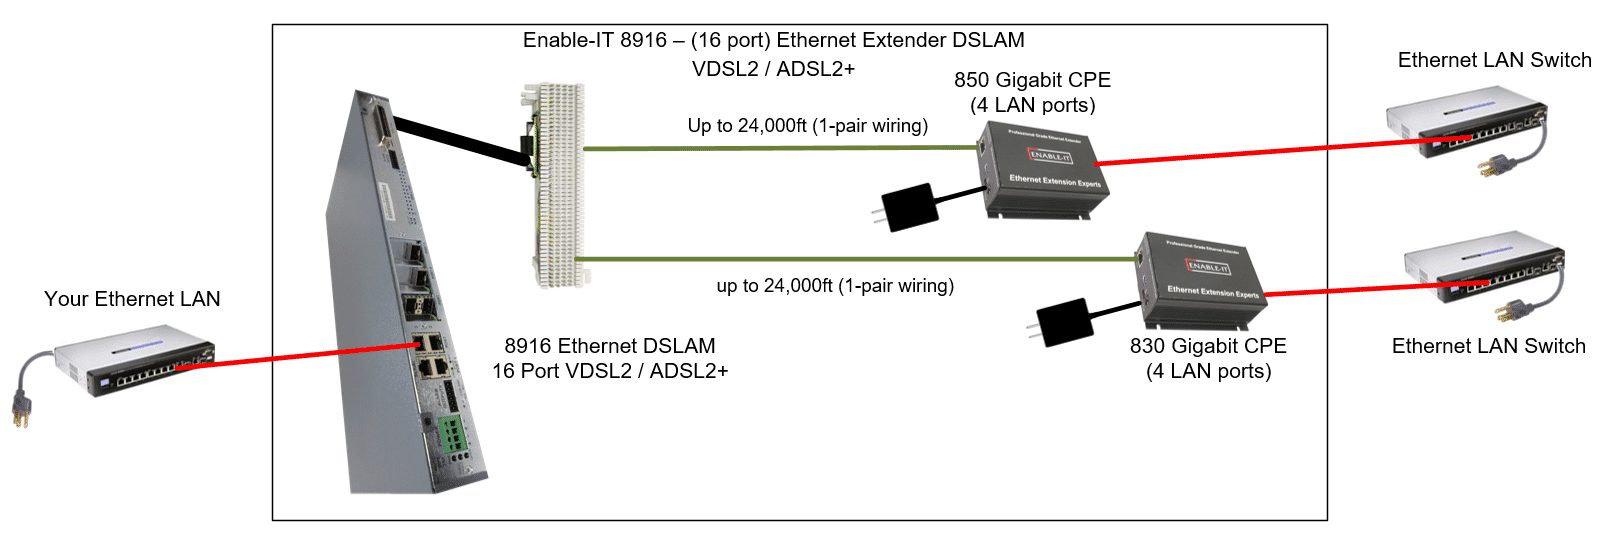 hight resolution of enable it 8916 dslam wiring